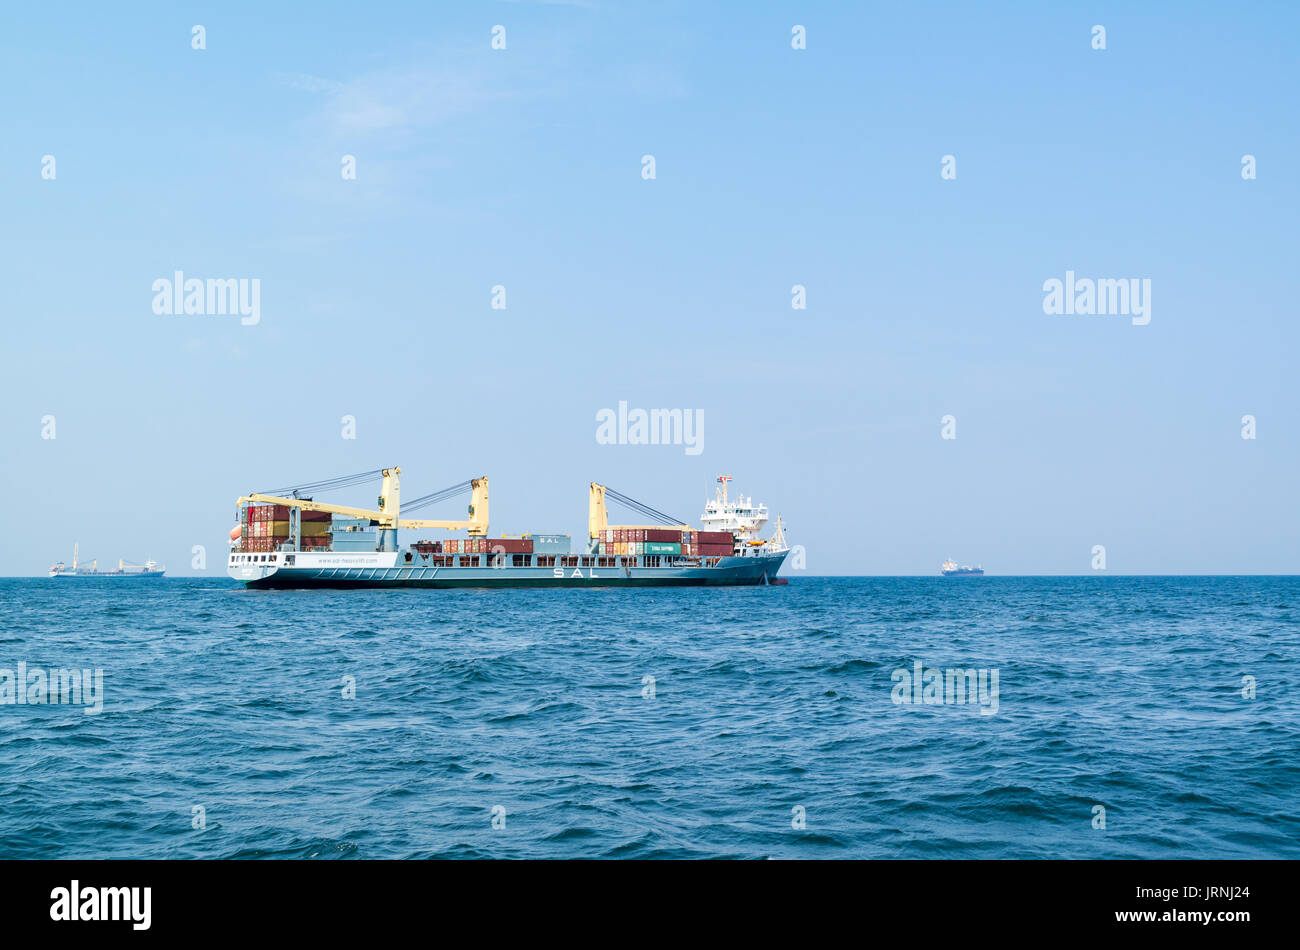 Heavy load carrier SAL Grietje with containers on deck on North Sea near port of Rotterdam, Netherlands - Stock Image